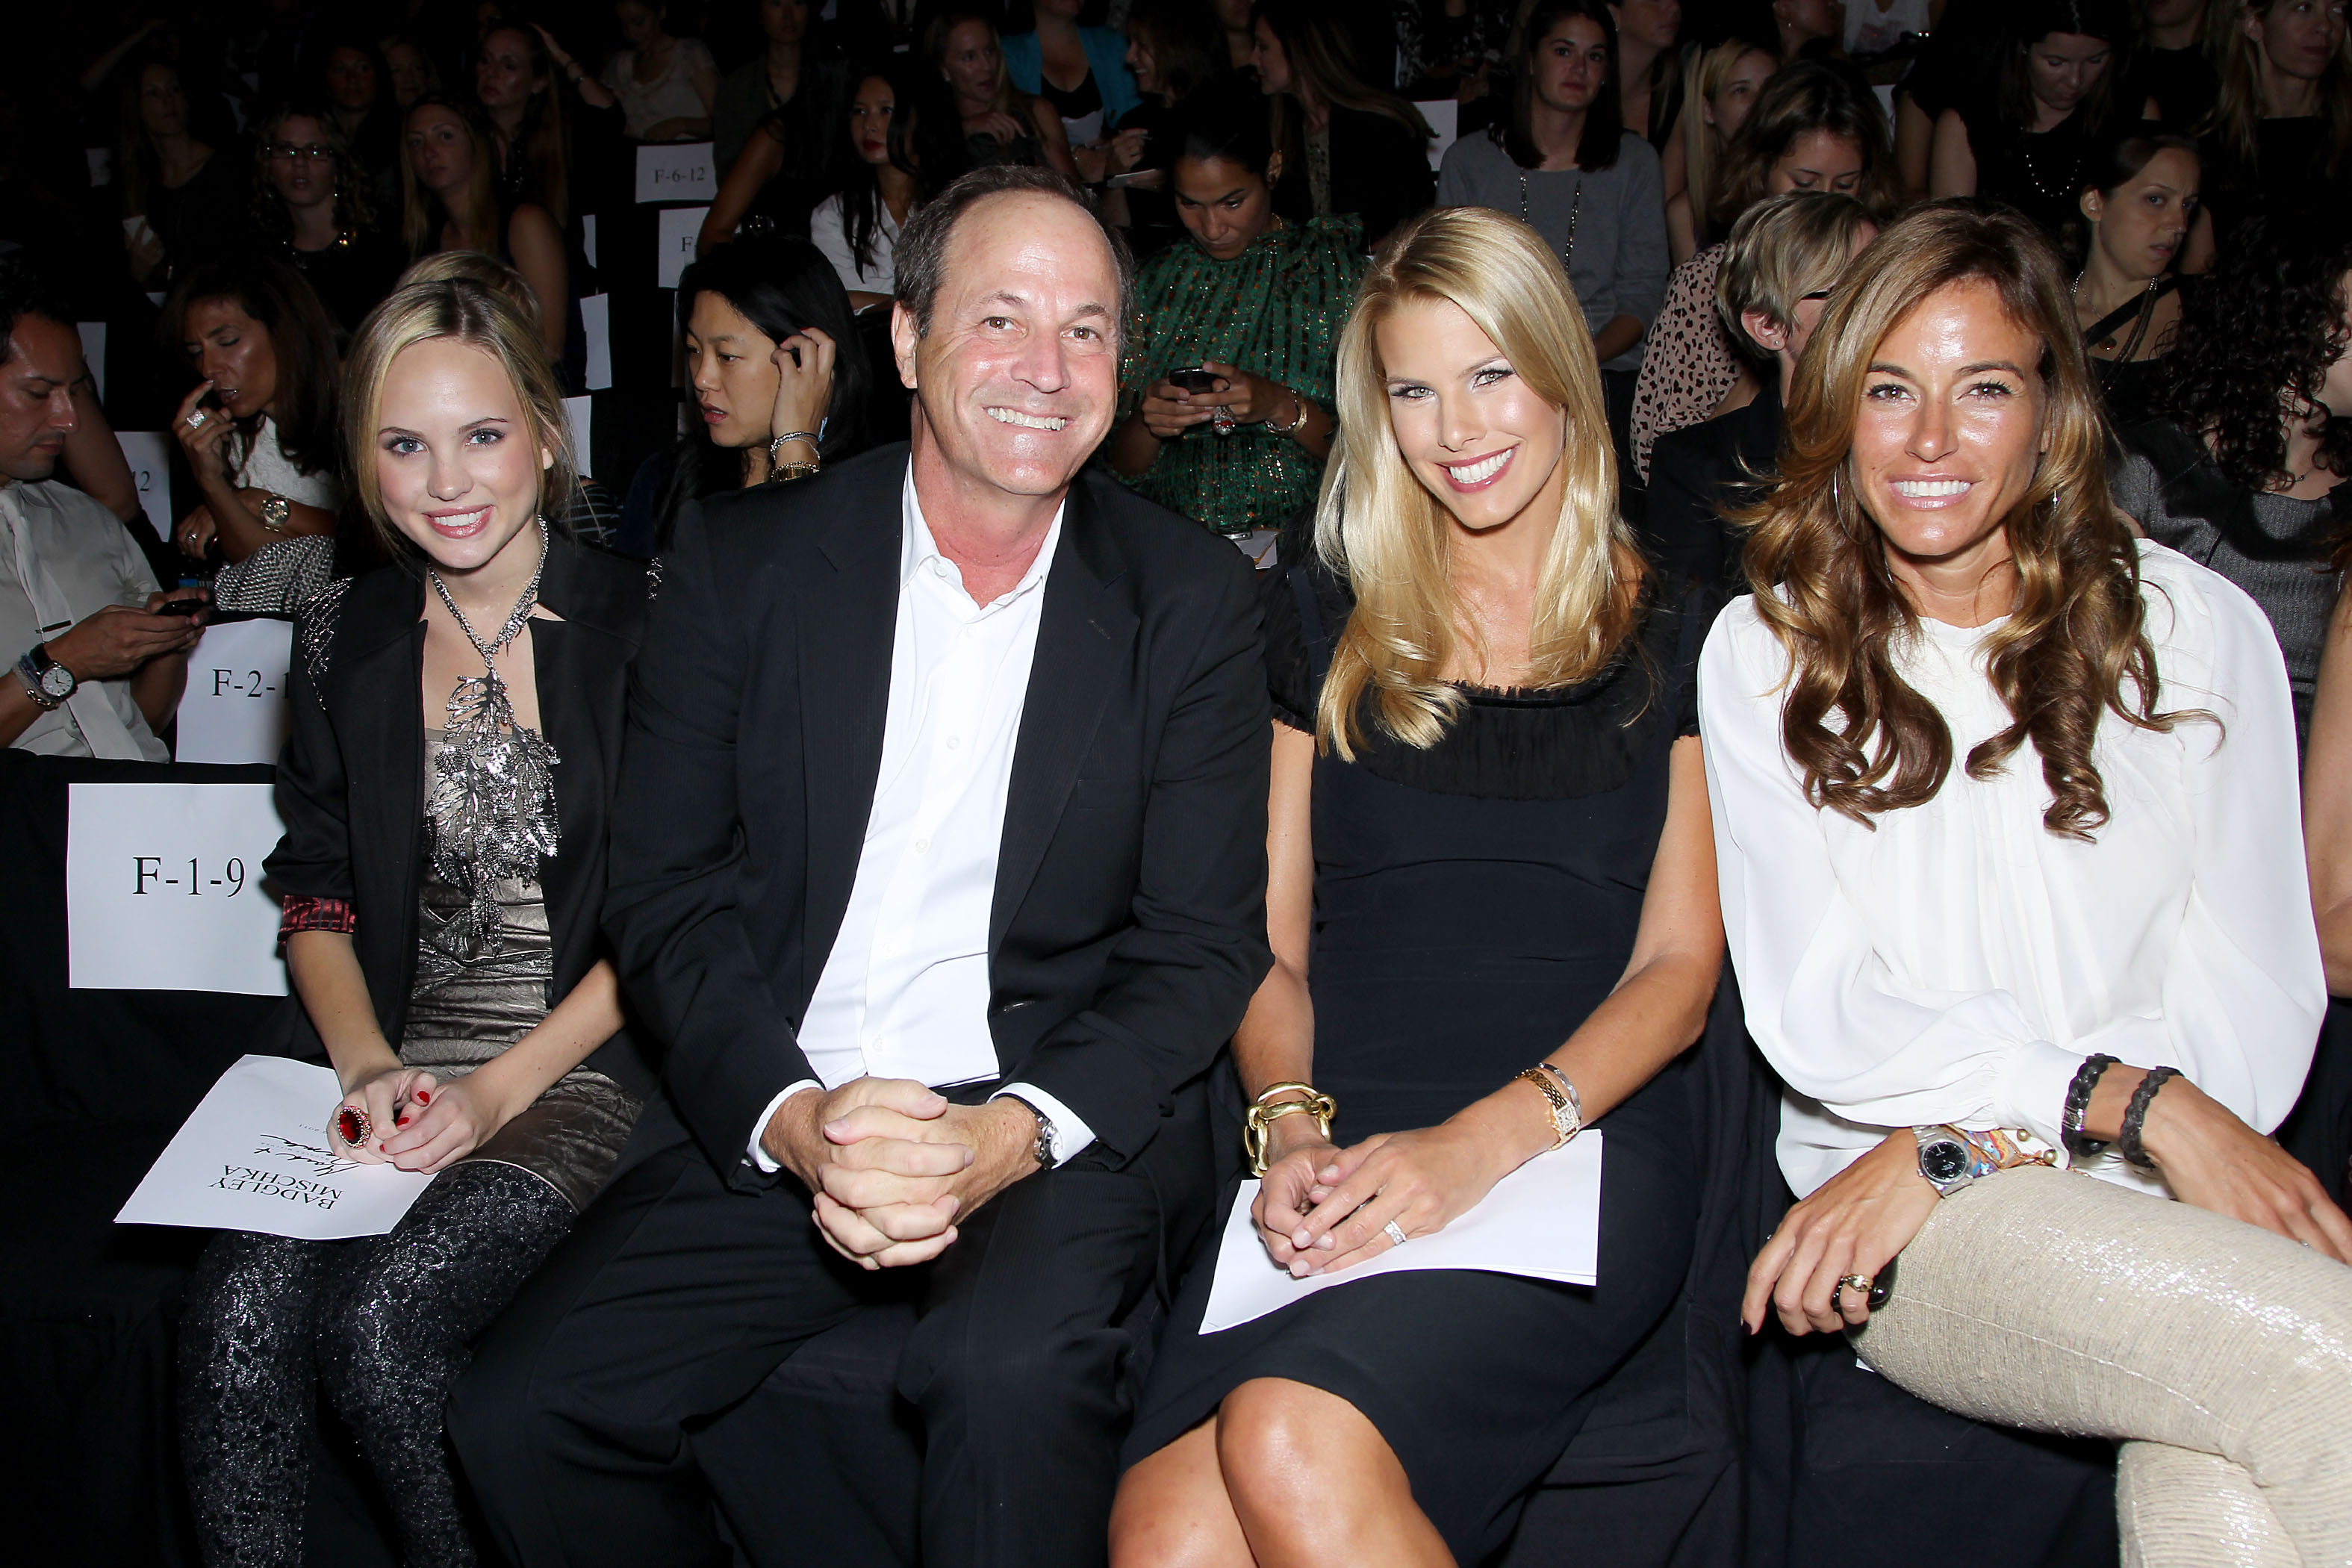 Meaghan Martin, Neil Cole (Iconix Brand Group - Chairman), Beth Ostrosky Stern, Kelly BensimonBadgley Mischka Show Spring 2011, Mercedes-Benz Fashion Week, New York, America - 14 Sep 2010